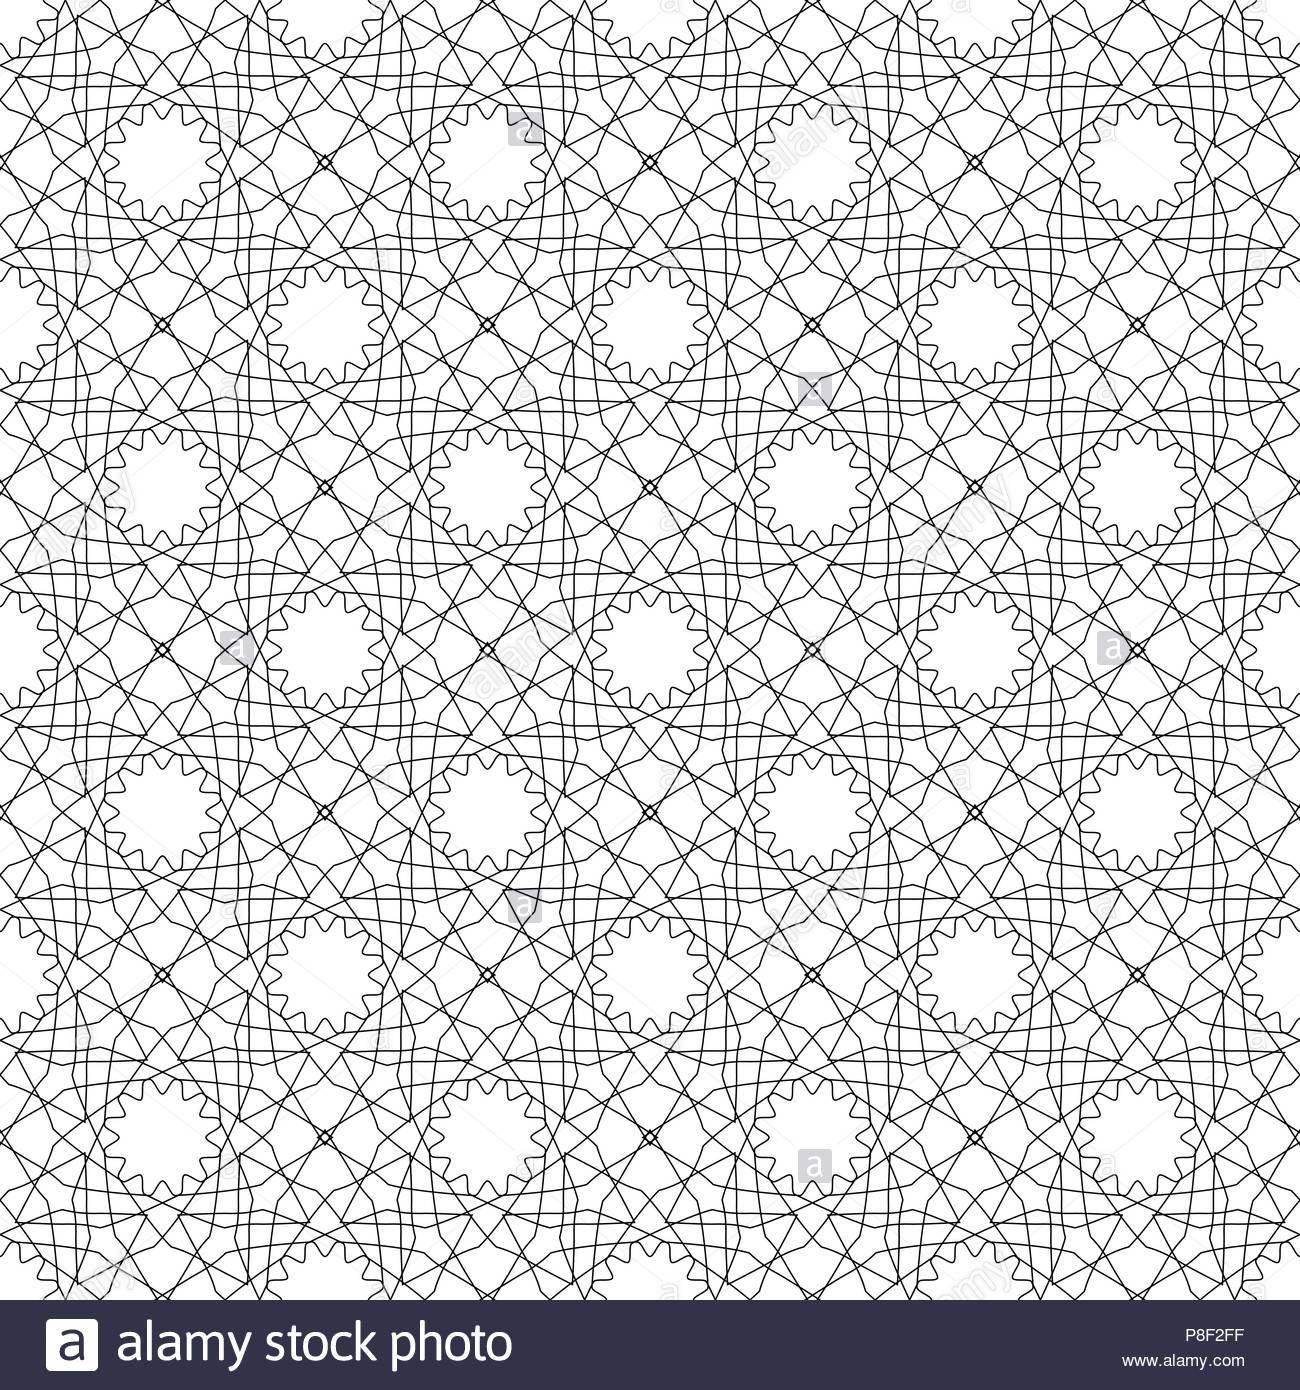 Simular texture with linear geometric ornaments. Stock Vector